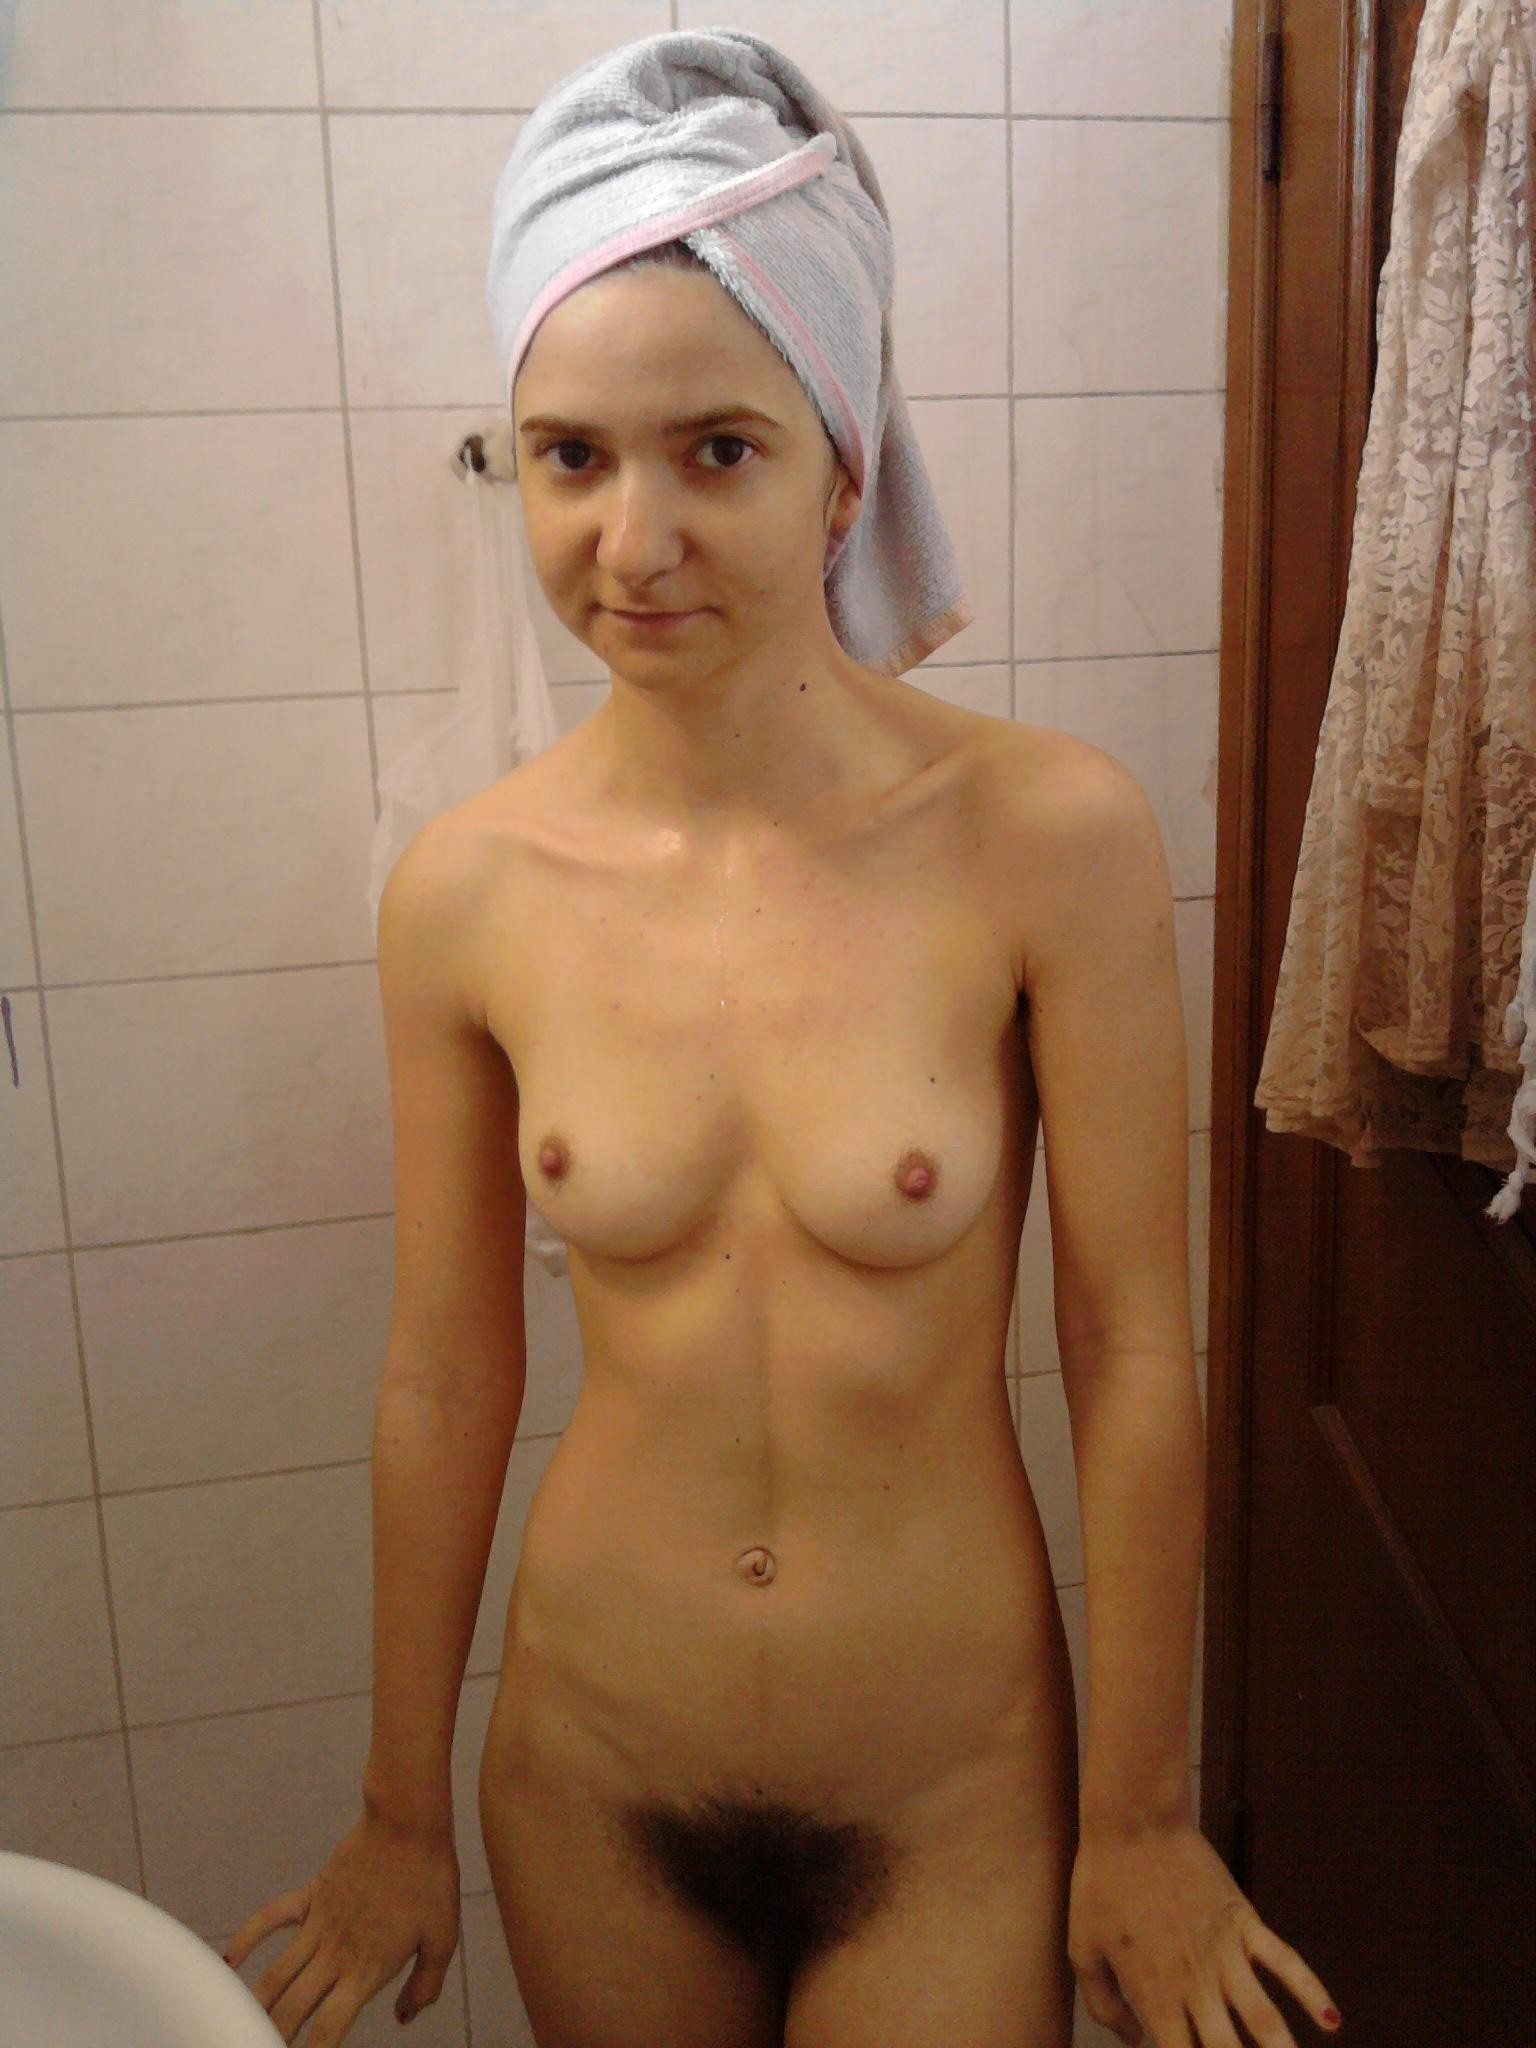 nude girl in open bathroom